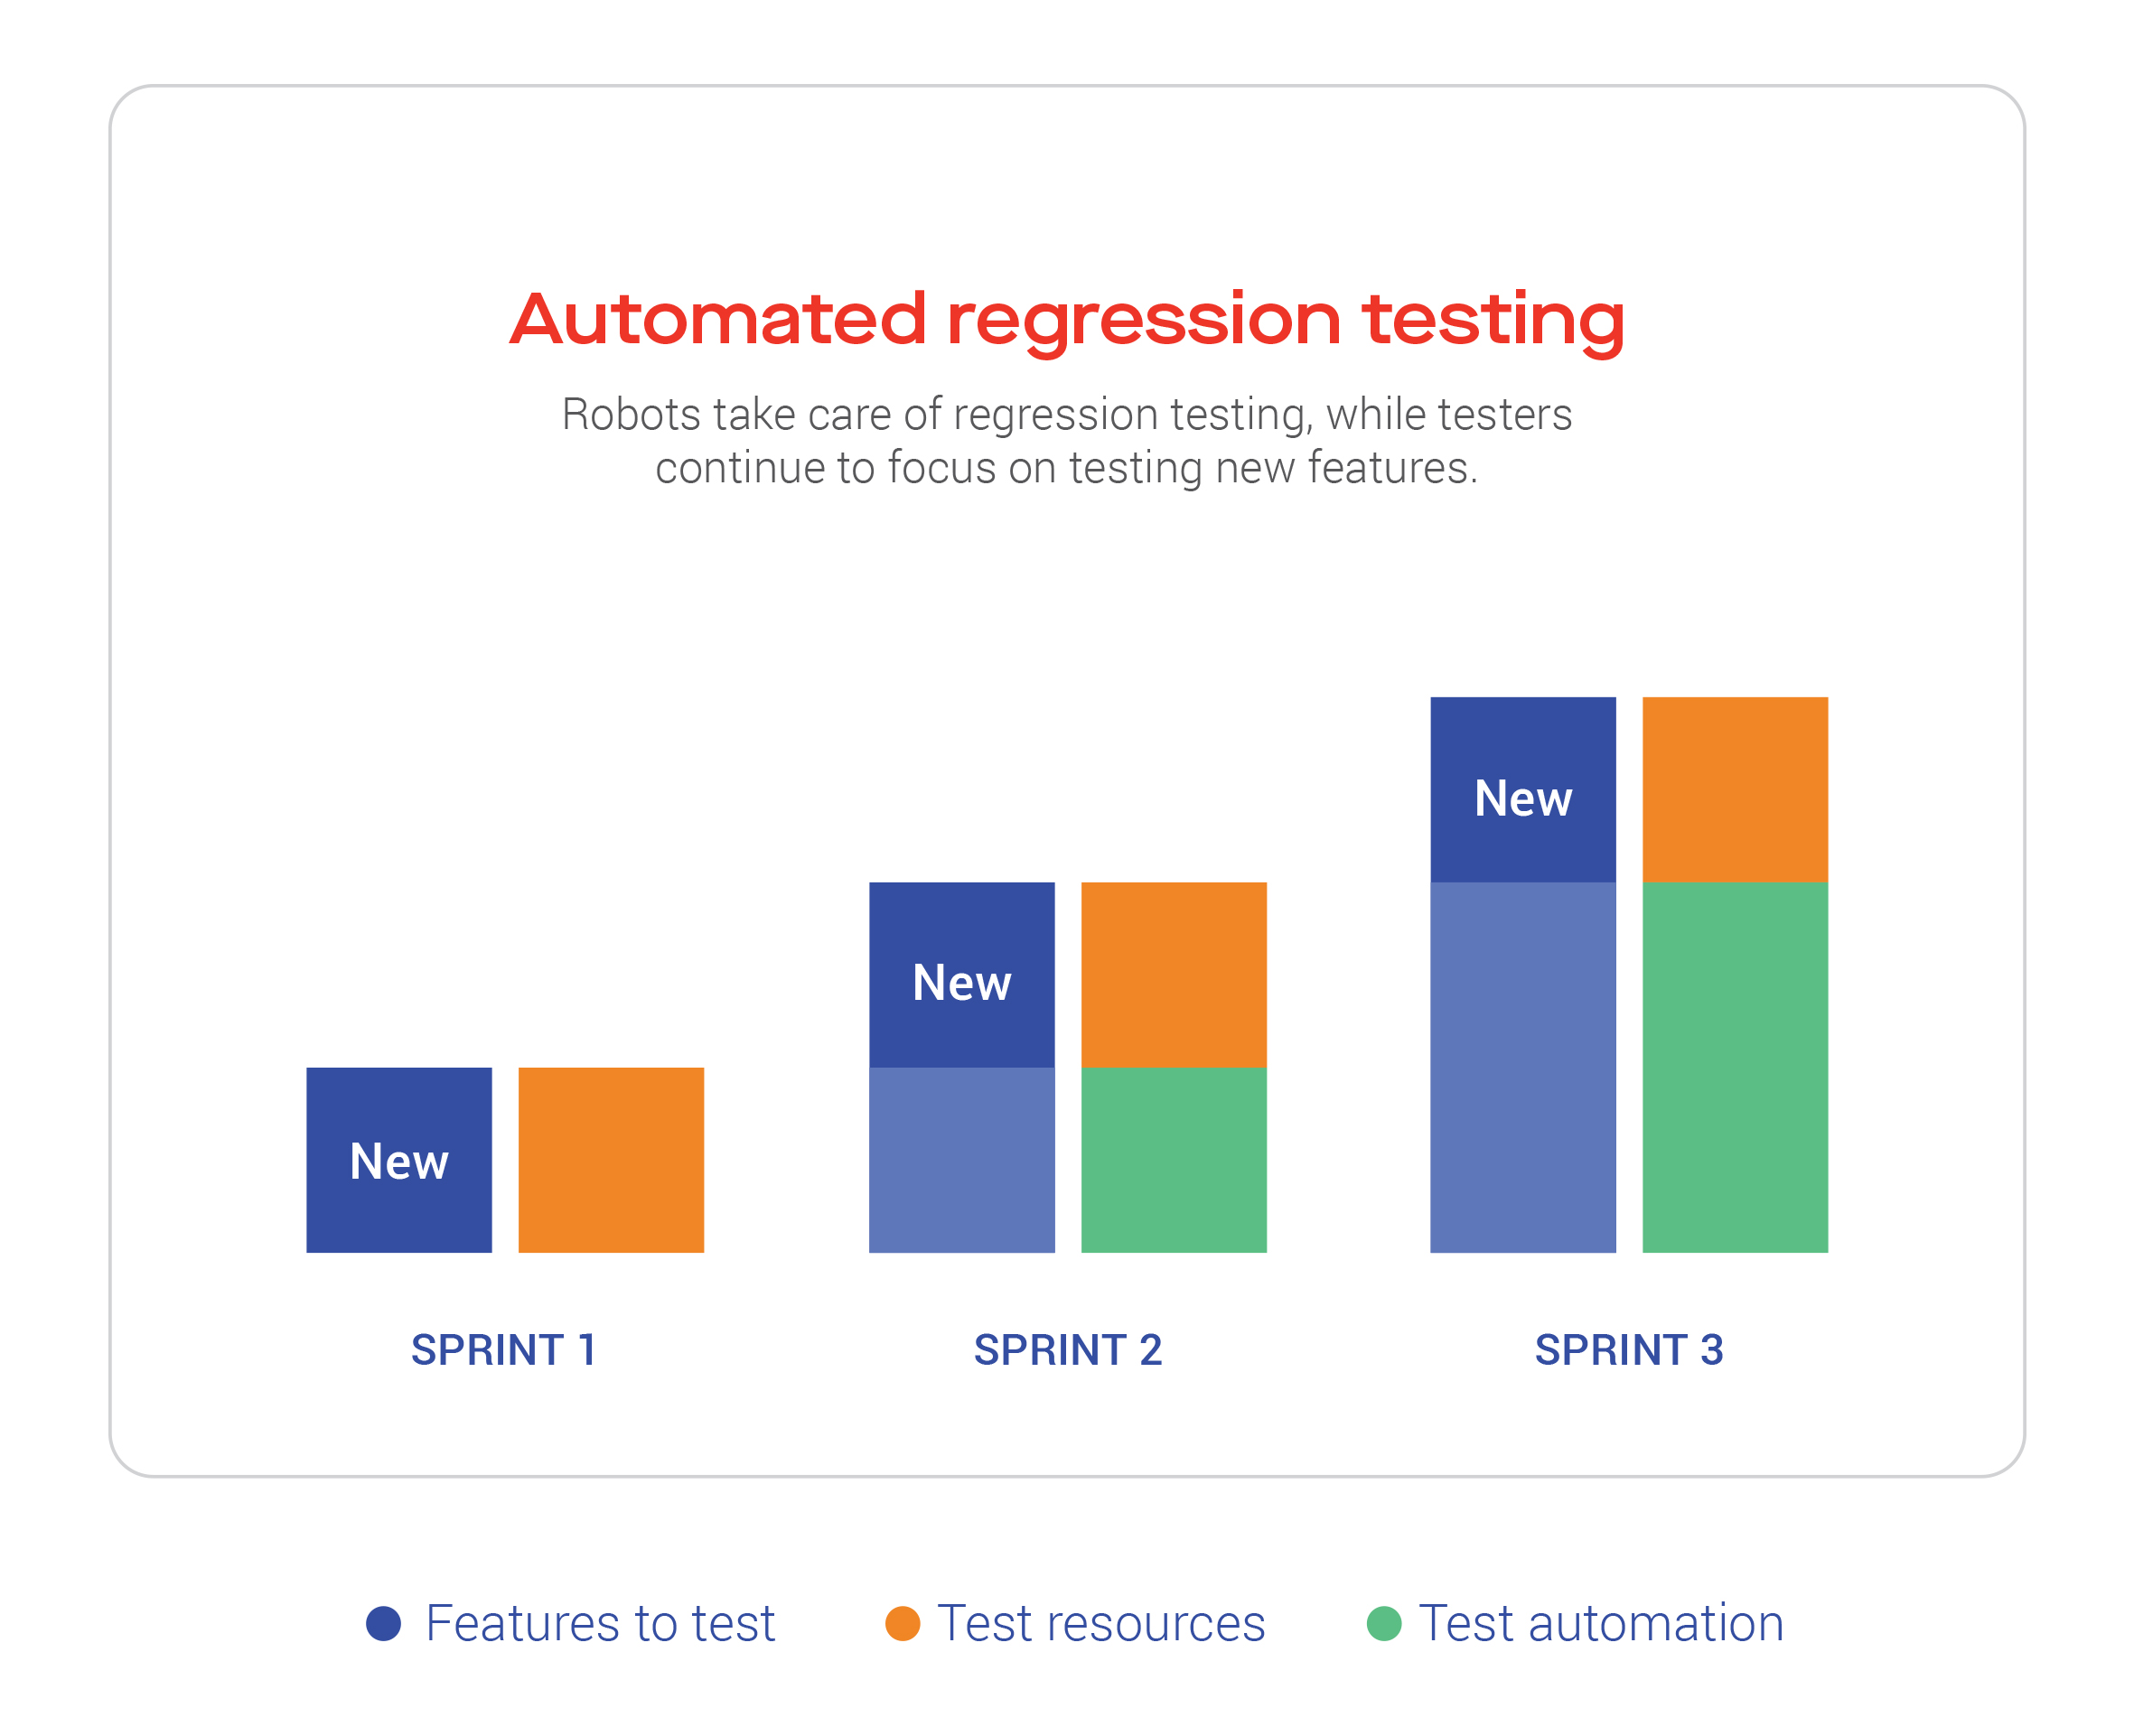 Automated regression testing